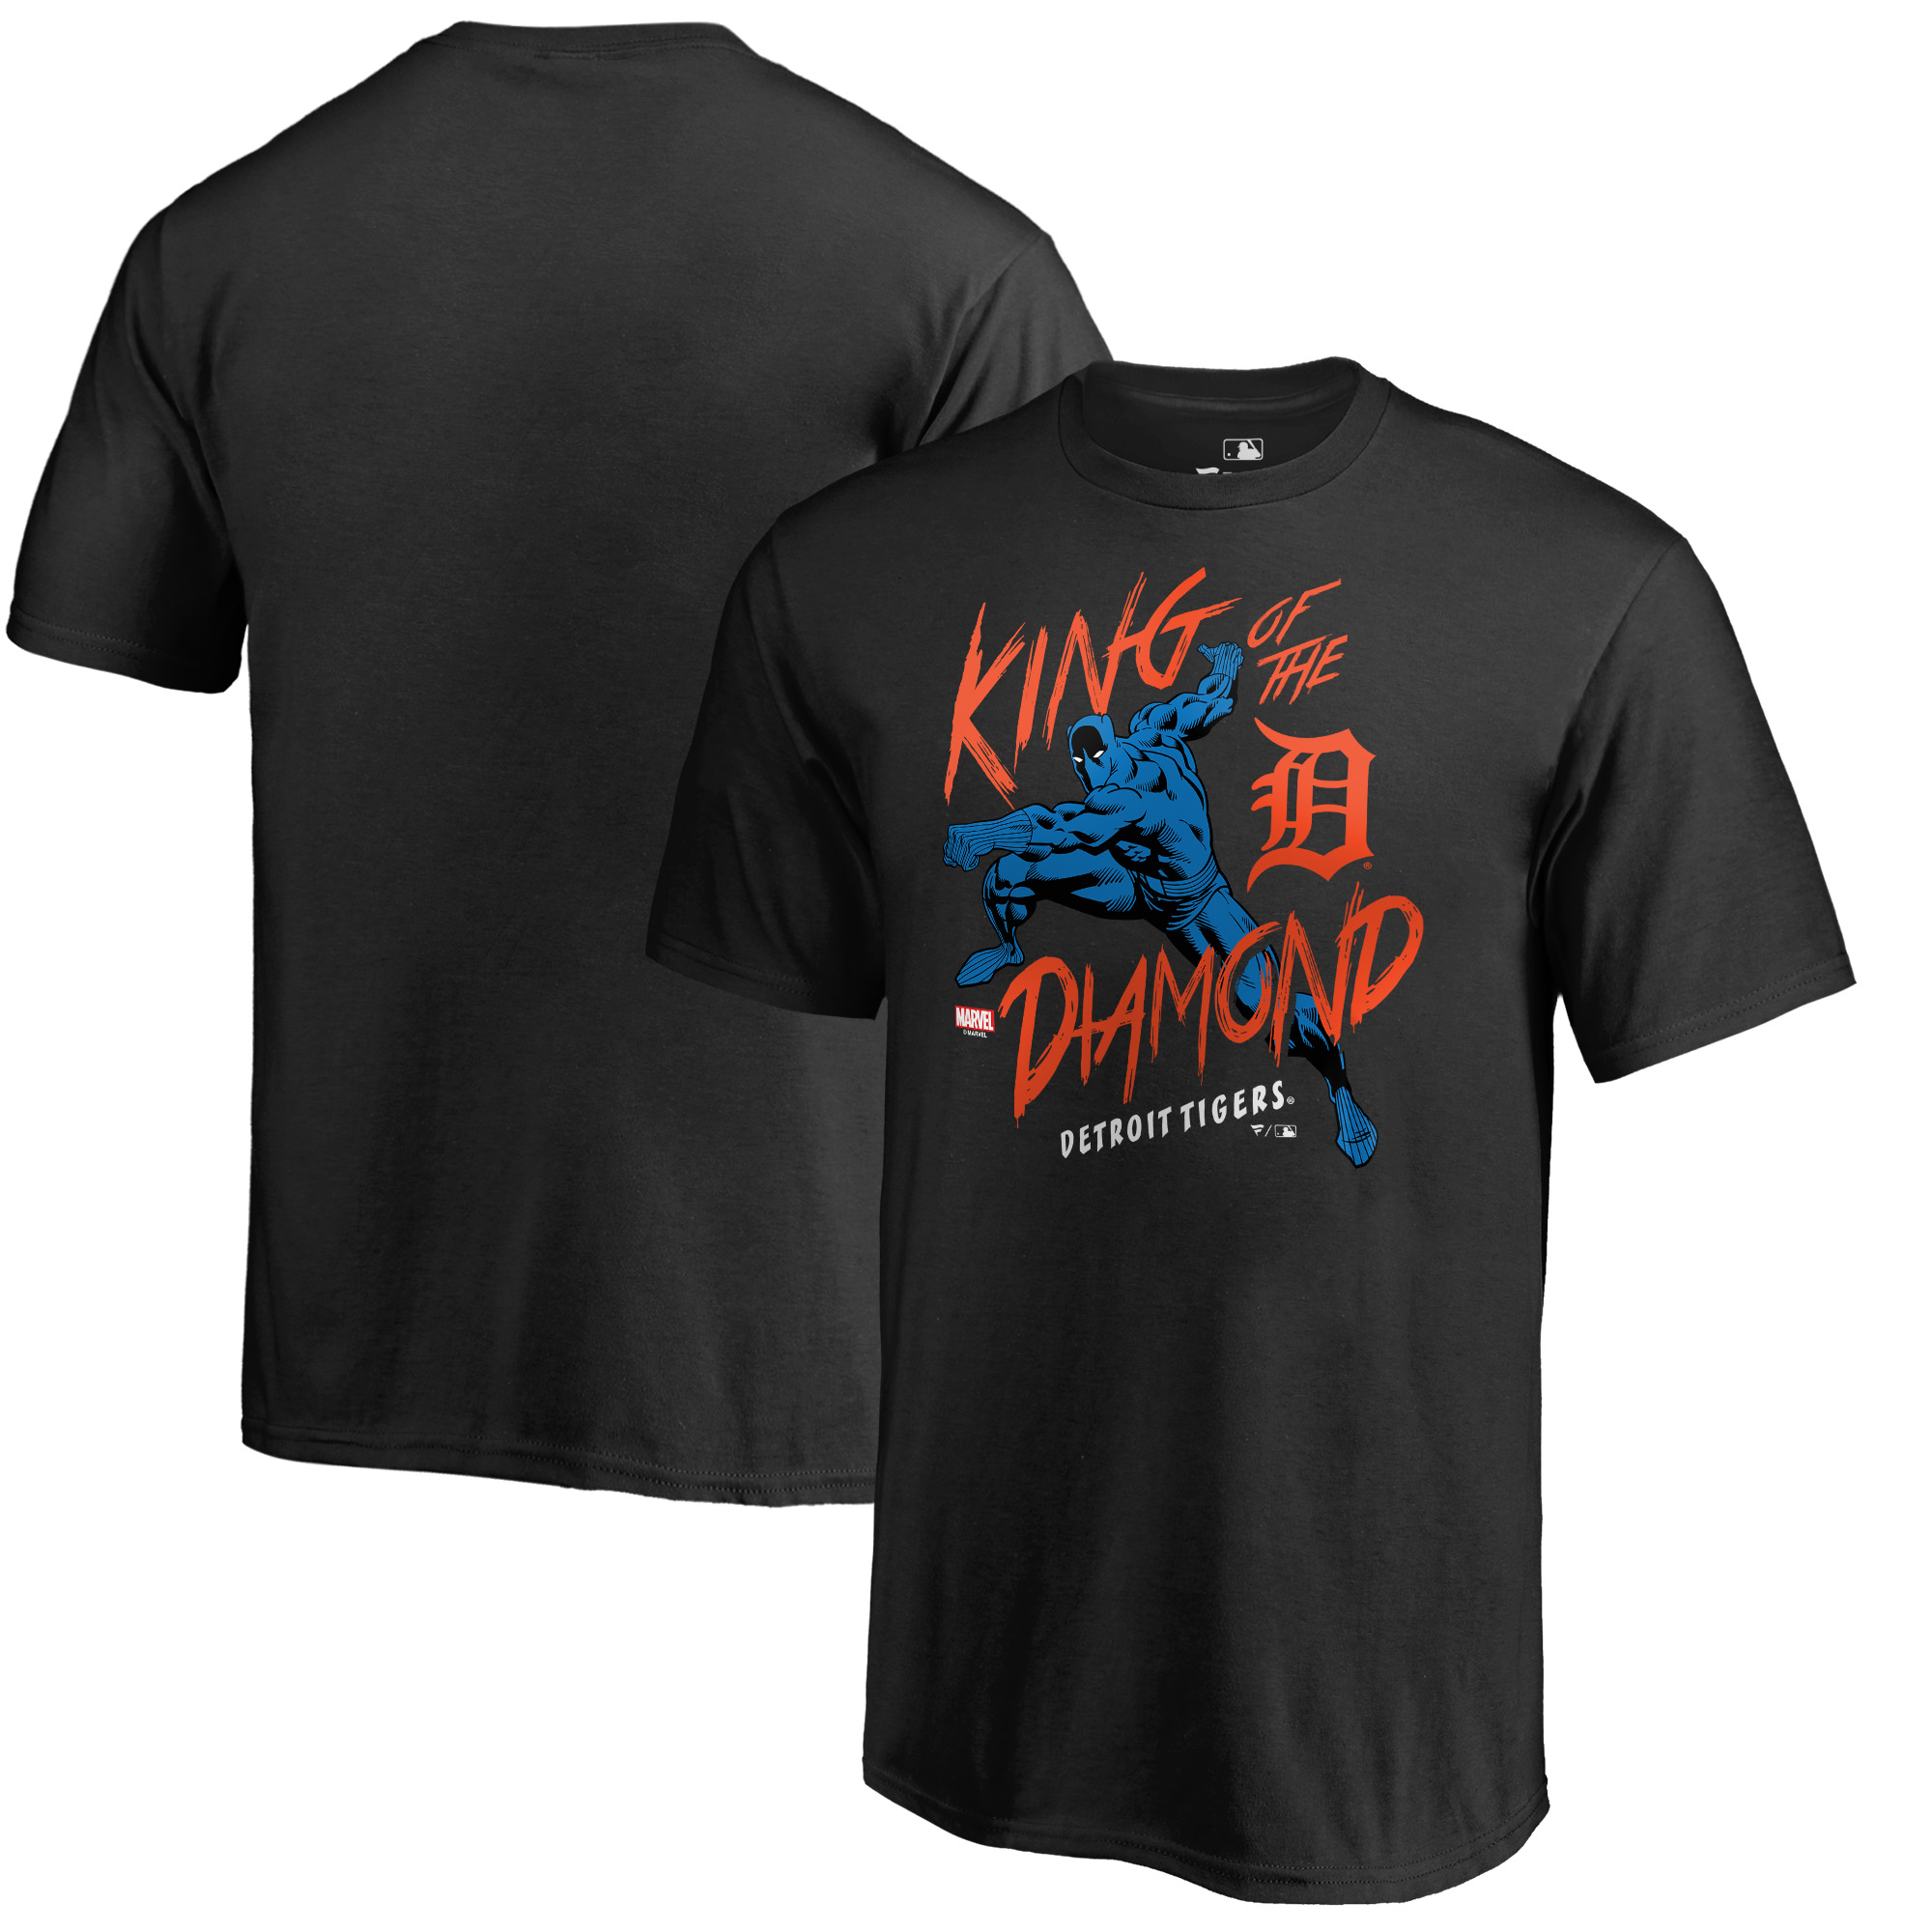 Detroit Tigers Fanatics Branded Youth MLB Marvel Black Panther King of the Diamond T-Shirt - Black